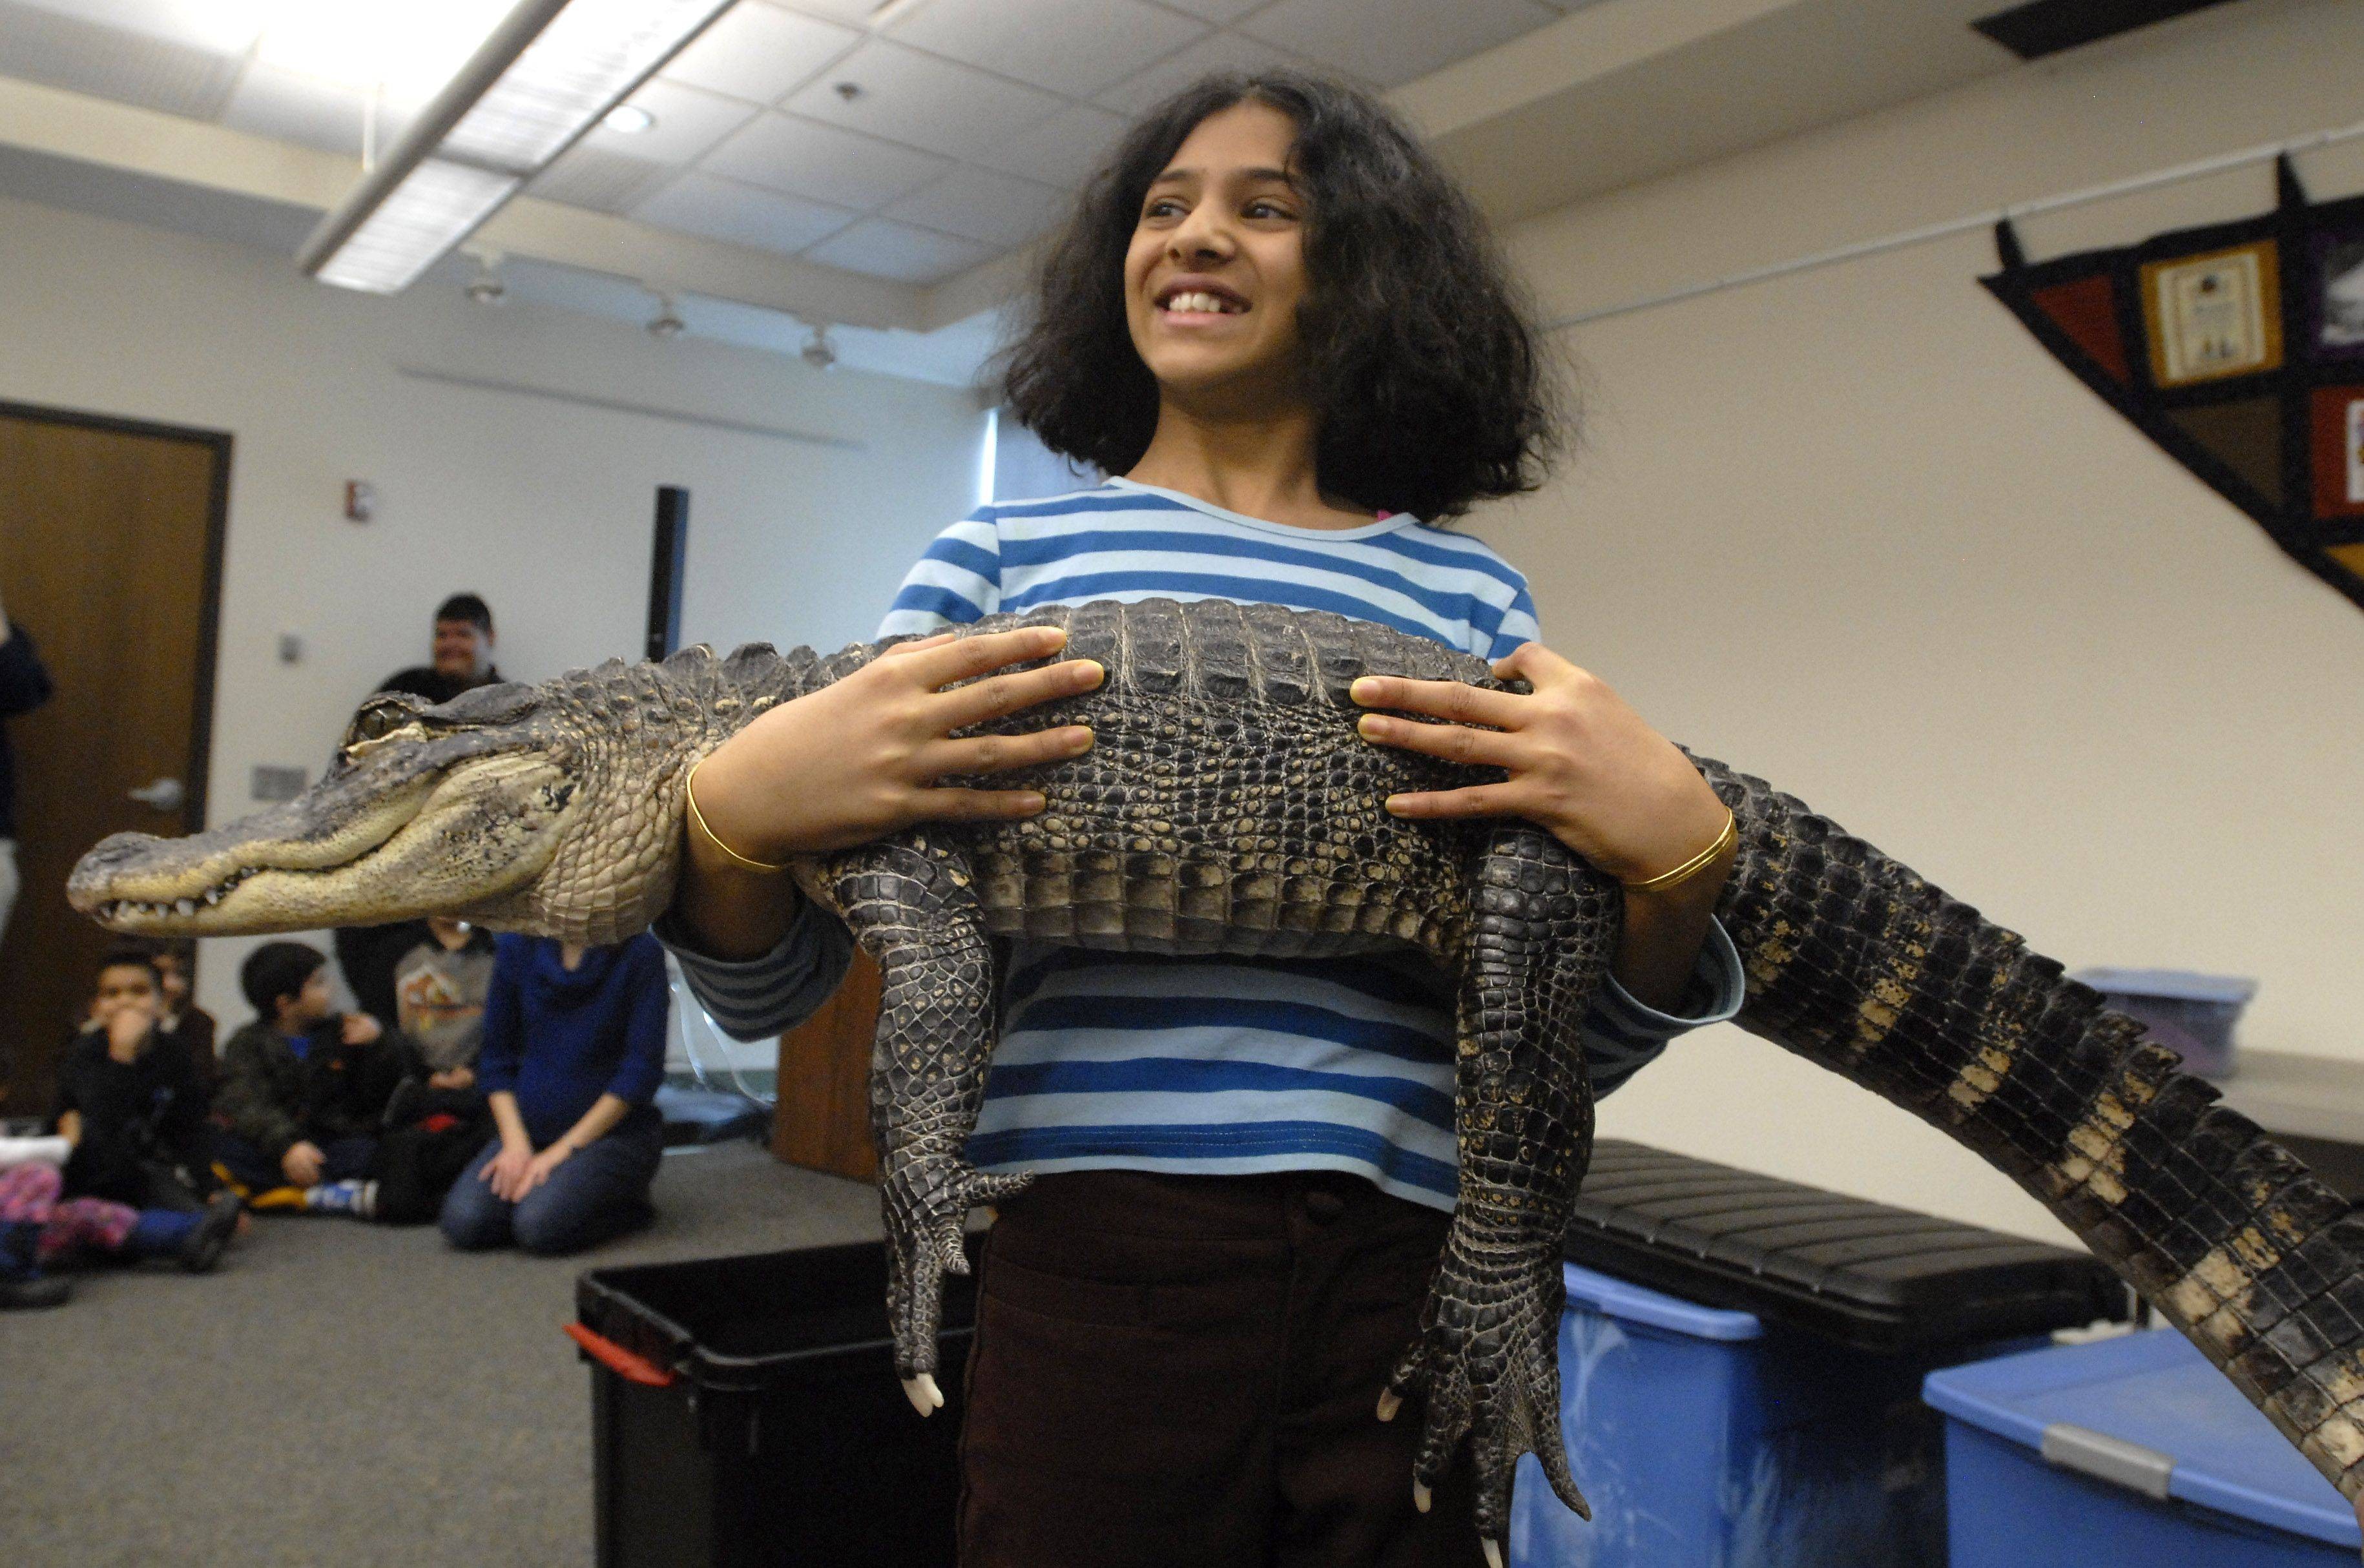 Sherya Sriram, 10,of Buffalo Grove enjoys holding Lucky the American alligator Wednesday at Indian Trails Public Library in Wheeling.